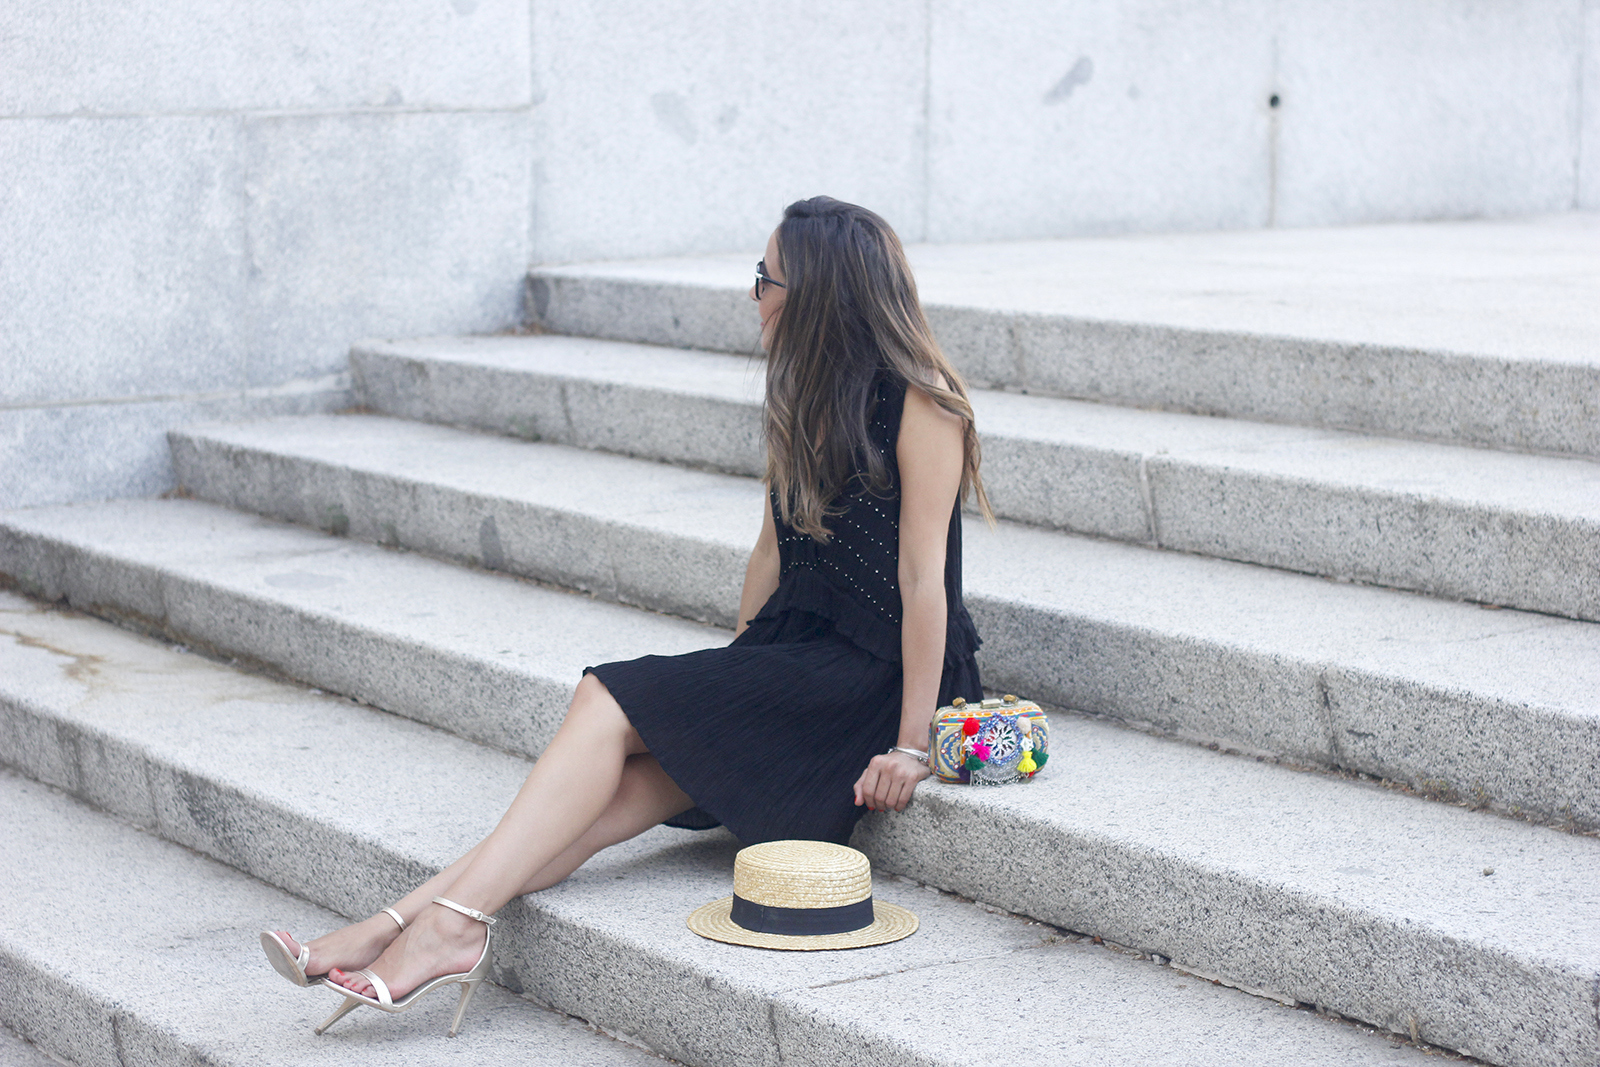 boho black canotier heels summer outfit bag with pom poms summer outfit03